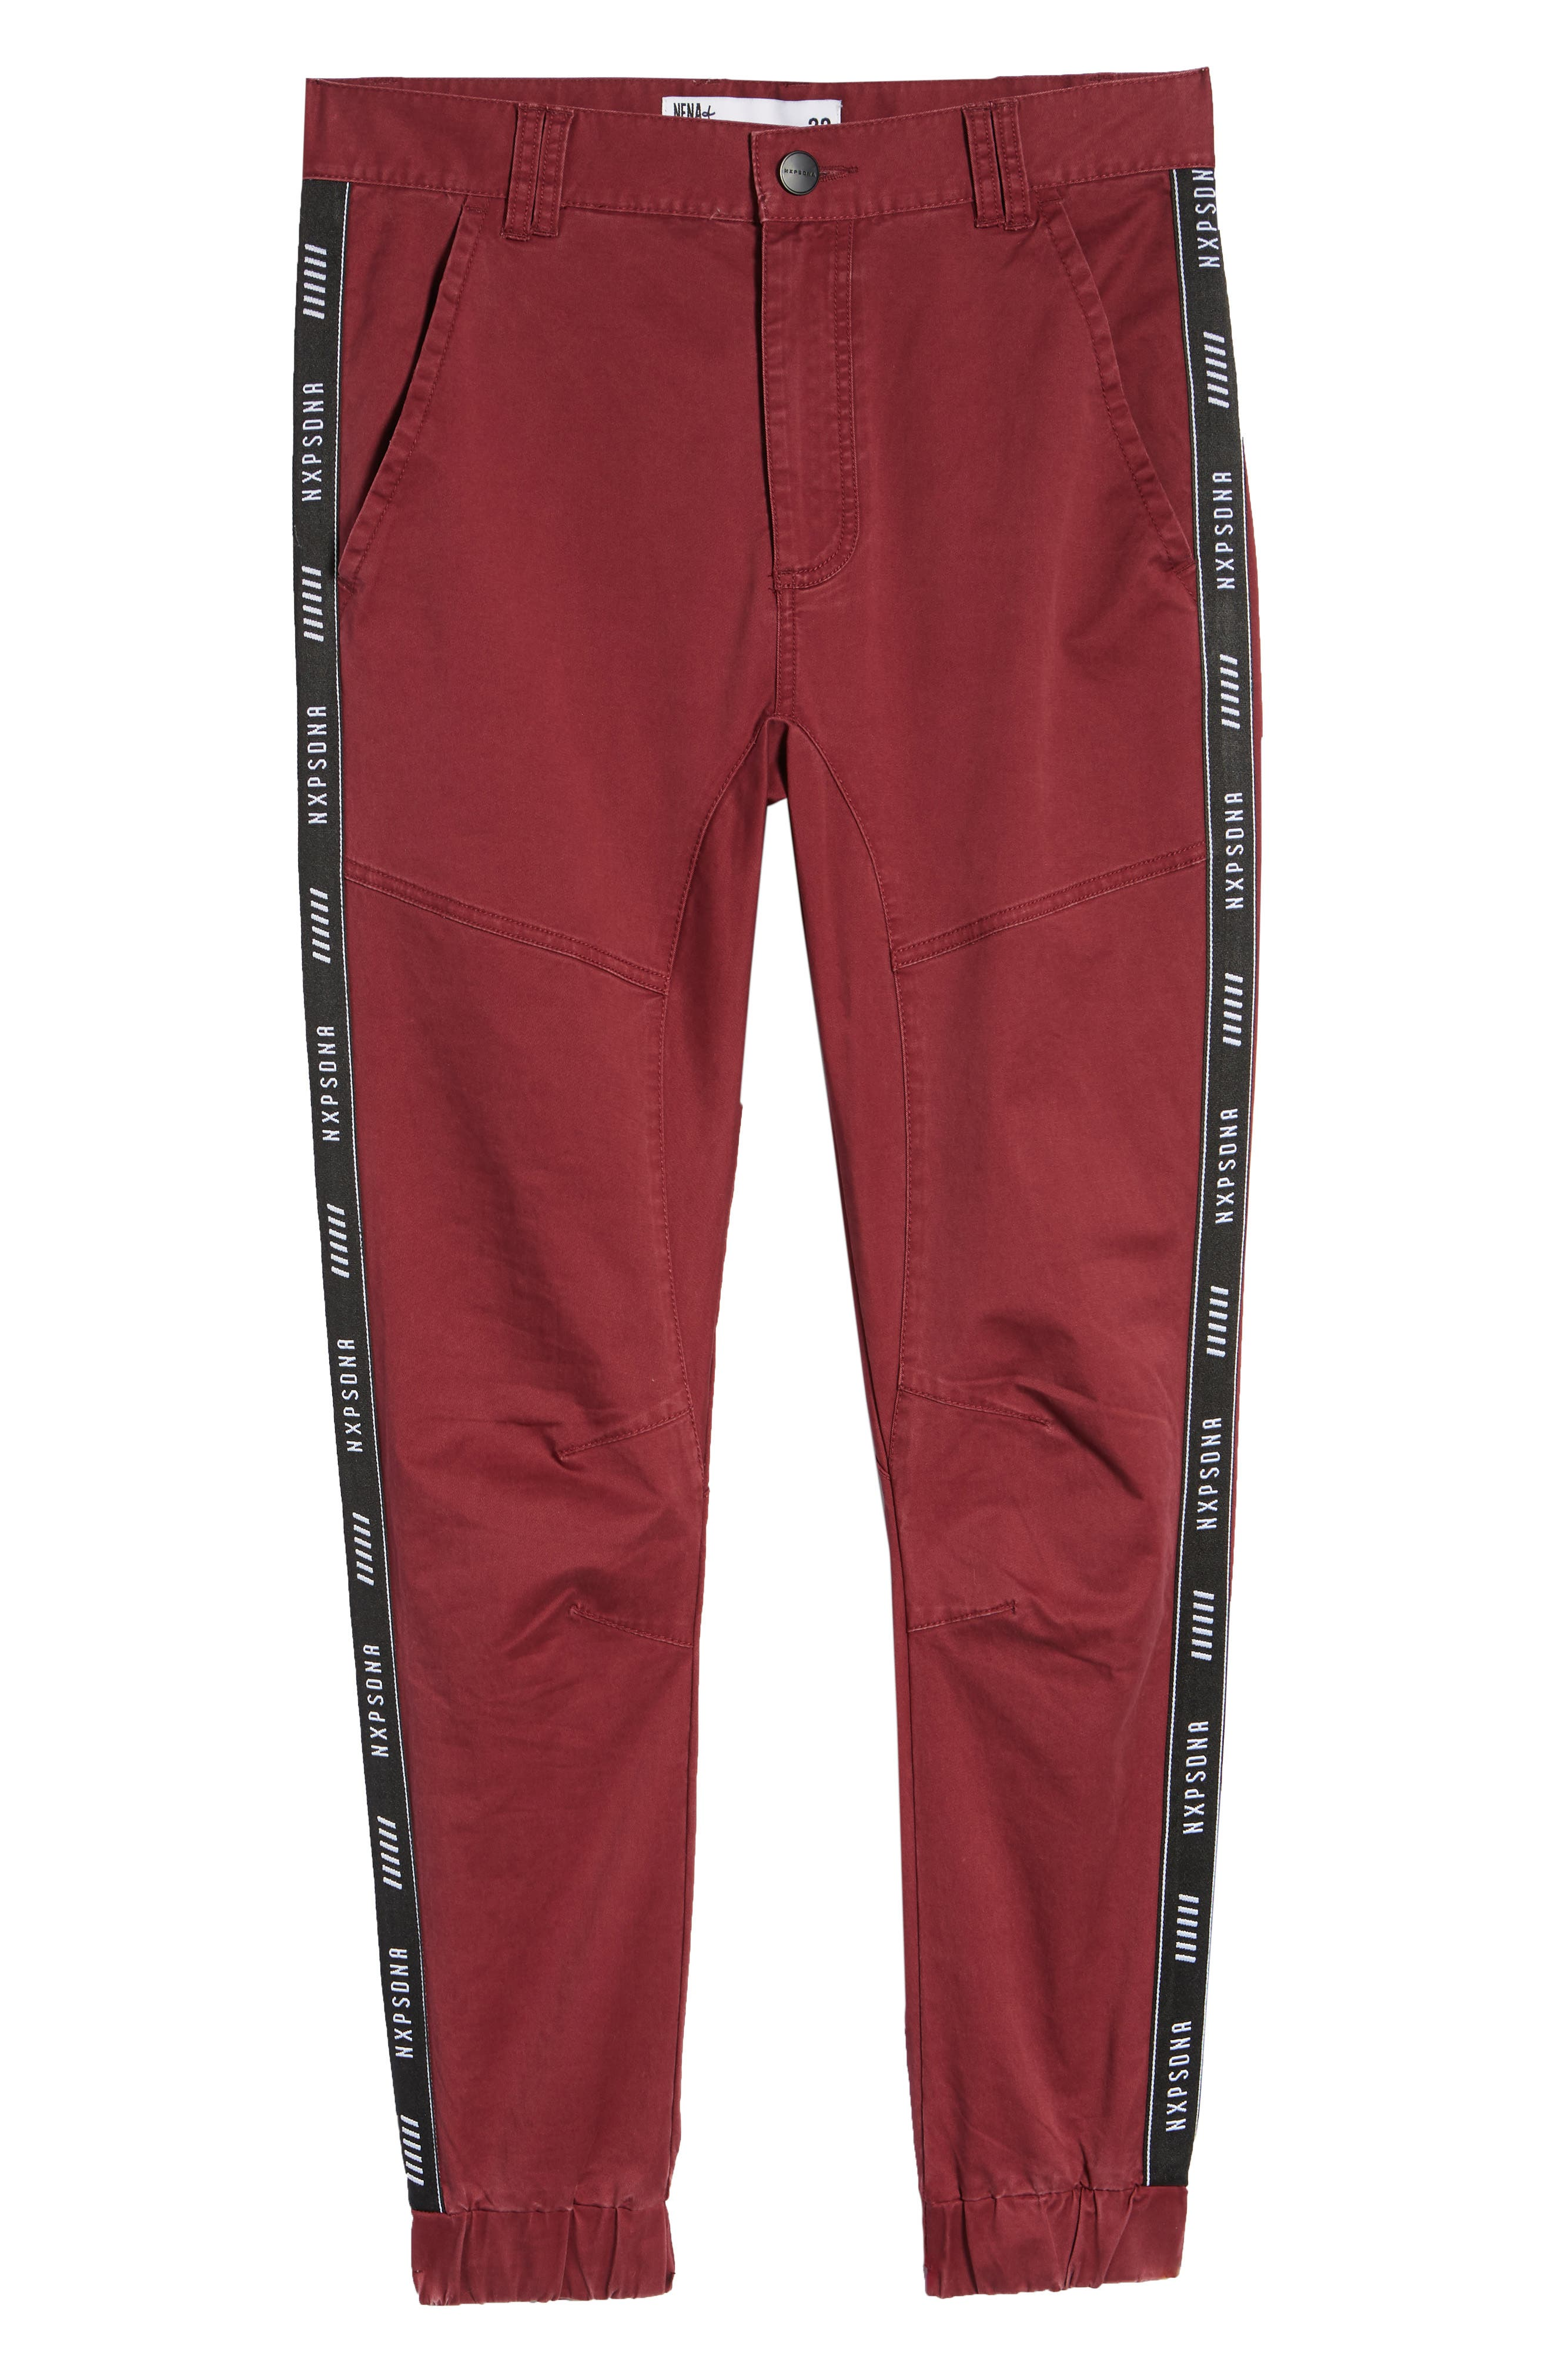 Firebrand Taped Chinos,                             Alternate thumbnail 6, color,                             BORDEAUX